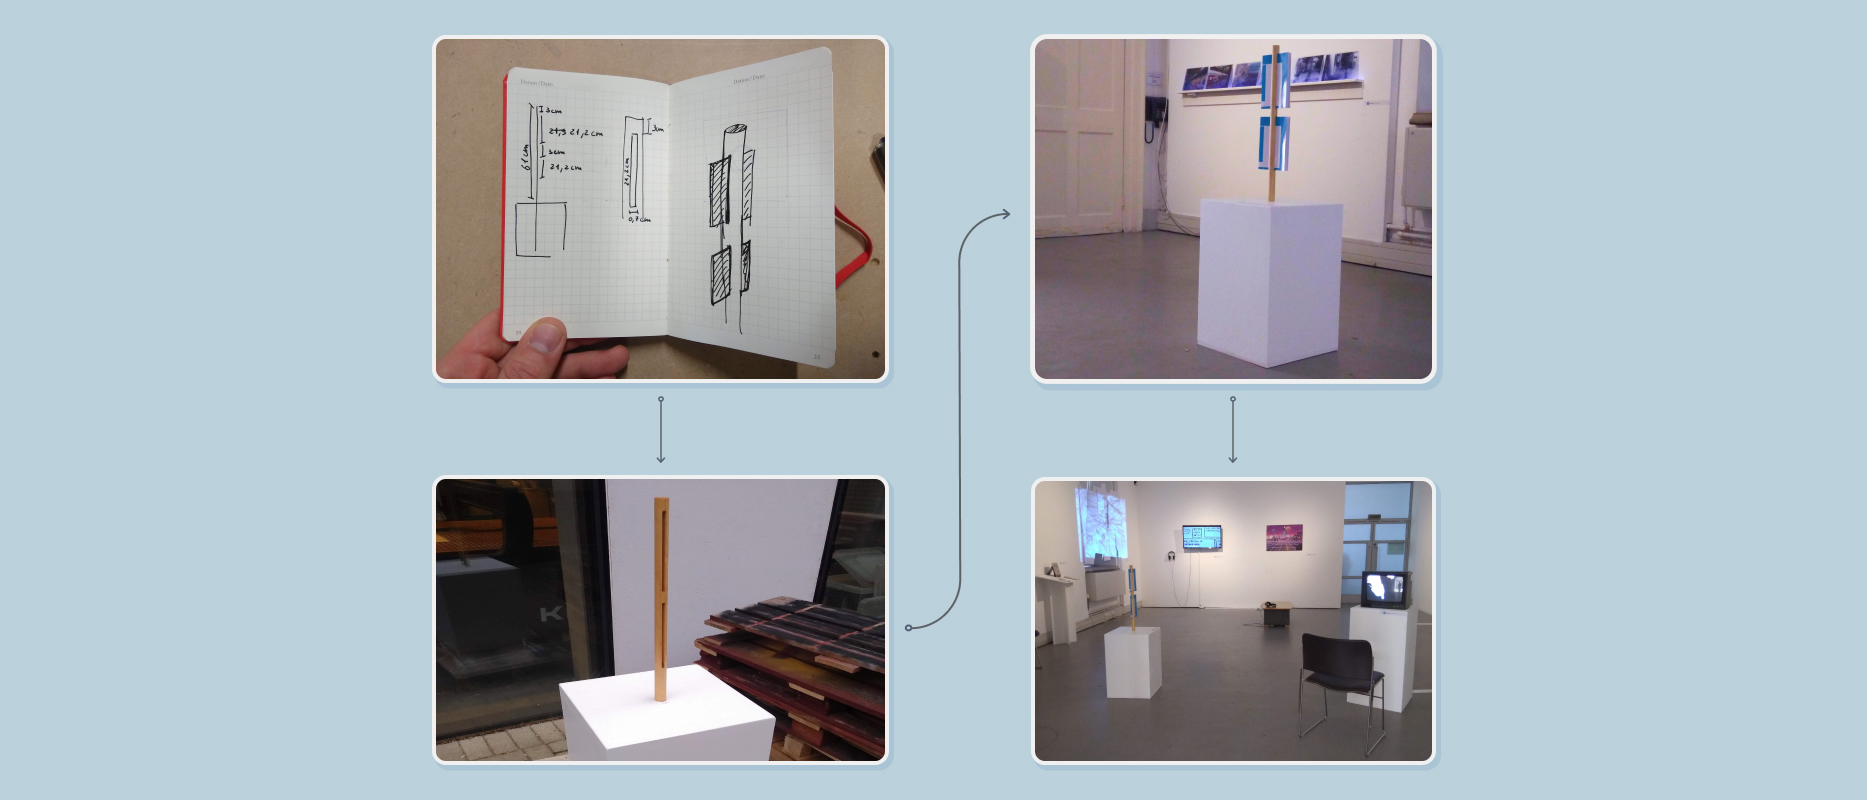 Collage of the book's installation display from concept to creation and exhibition